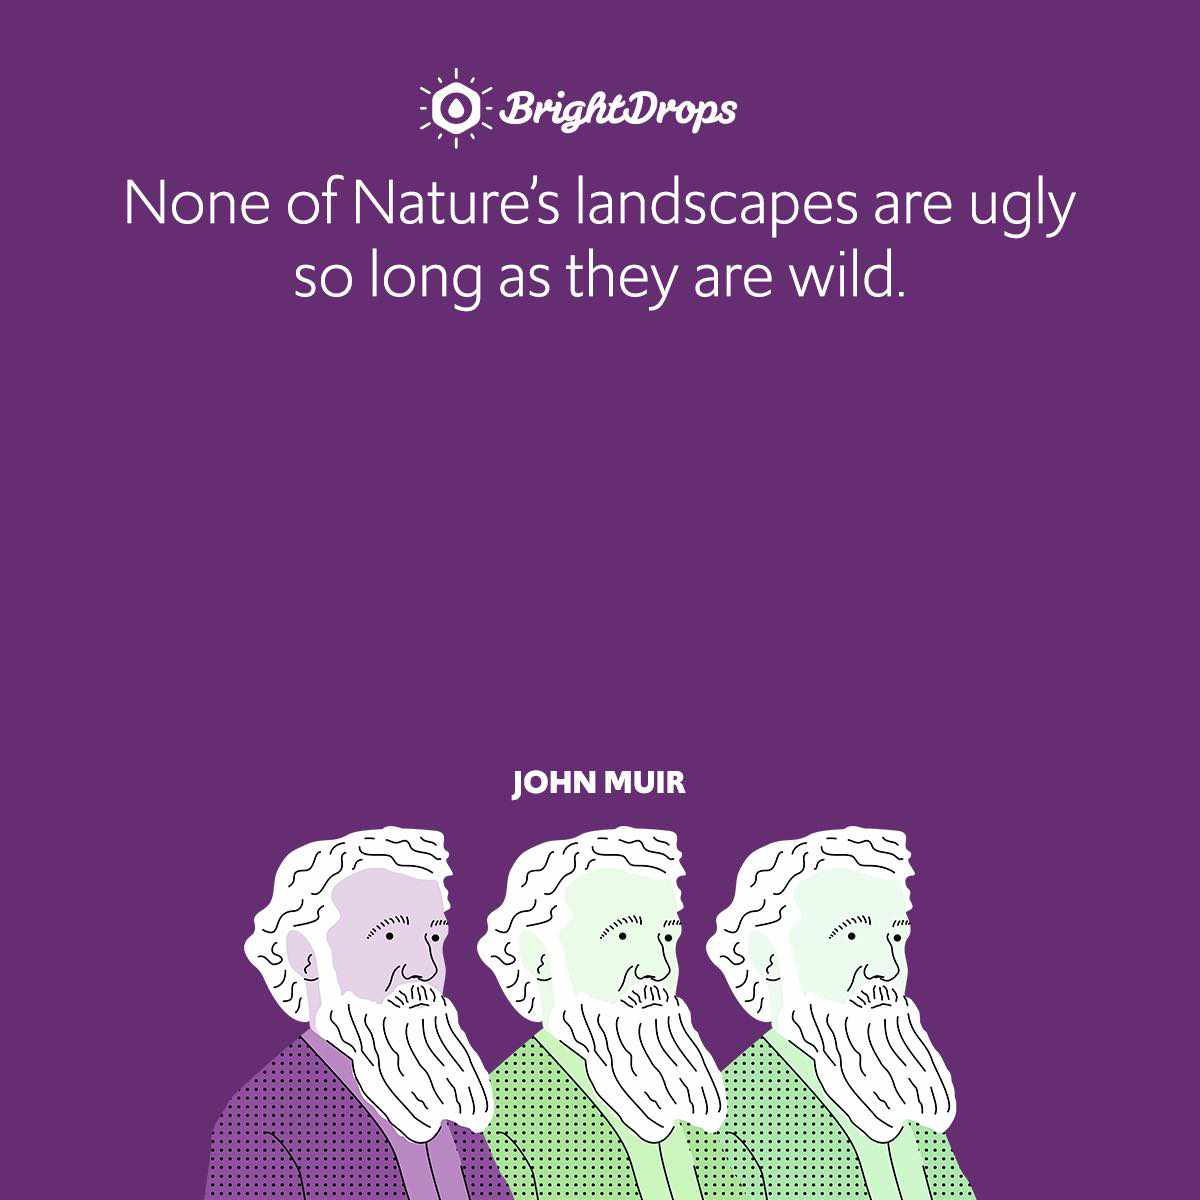 None of Nature's landscapes are ugly so long as they are wild.